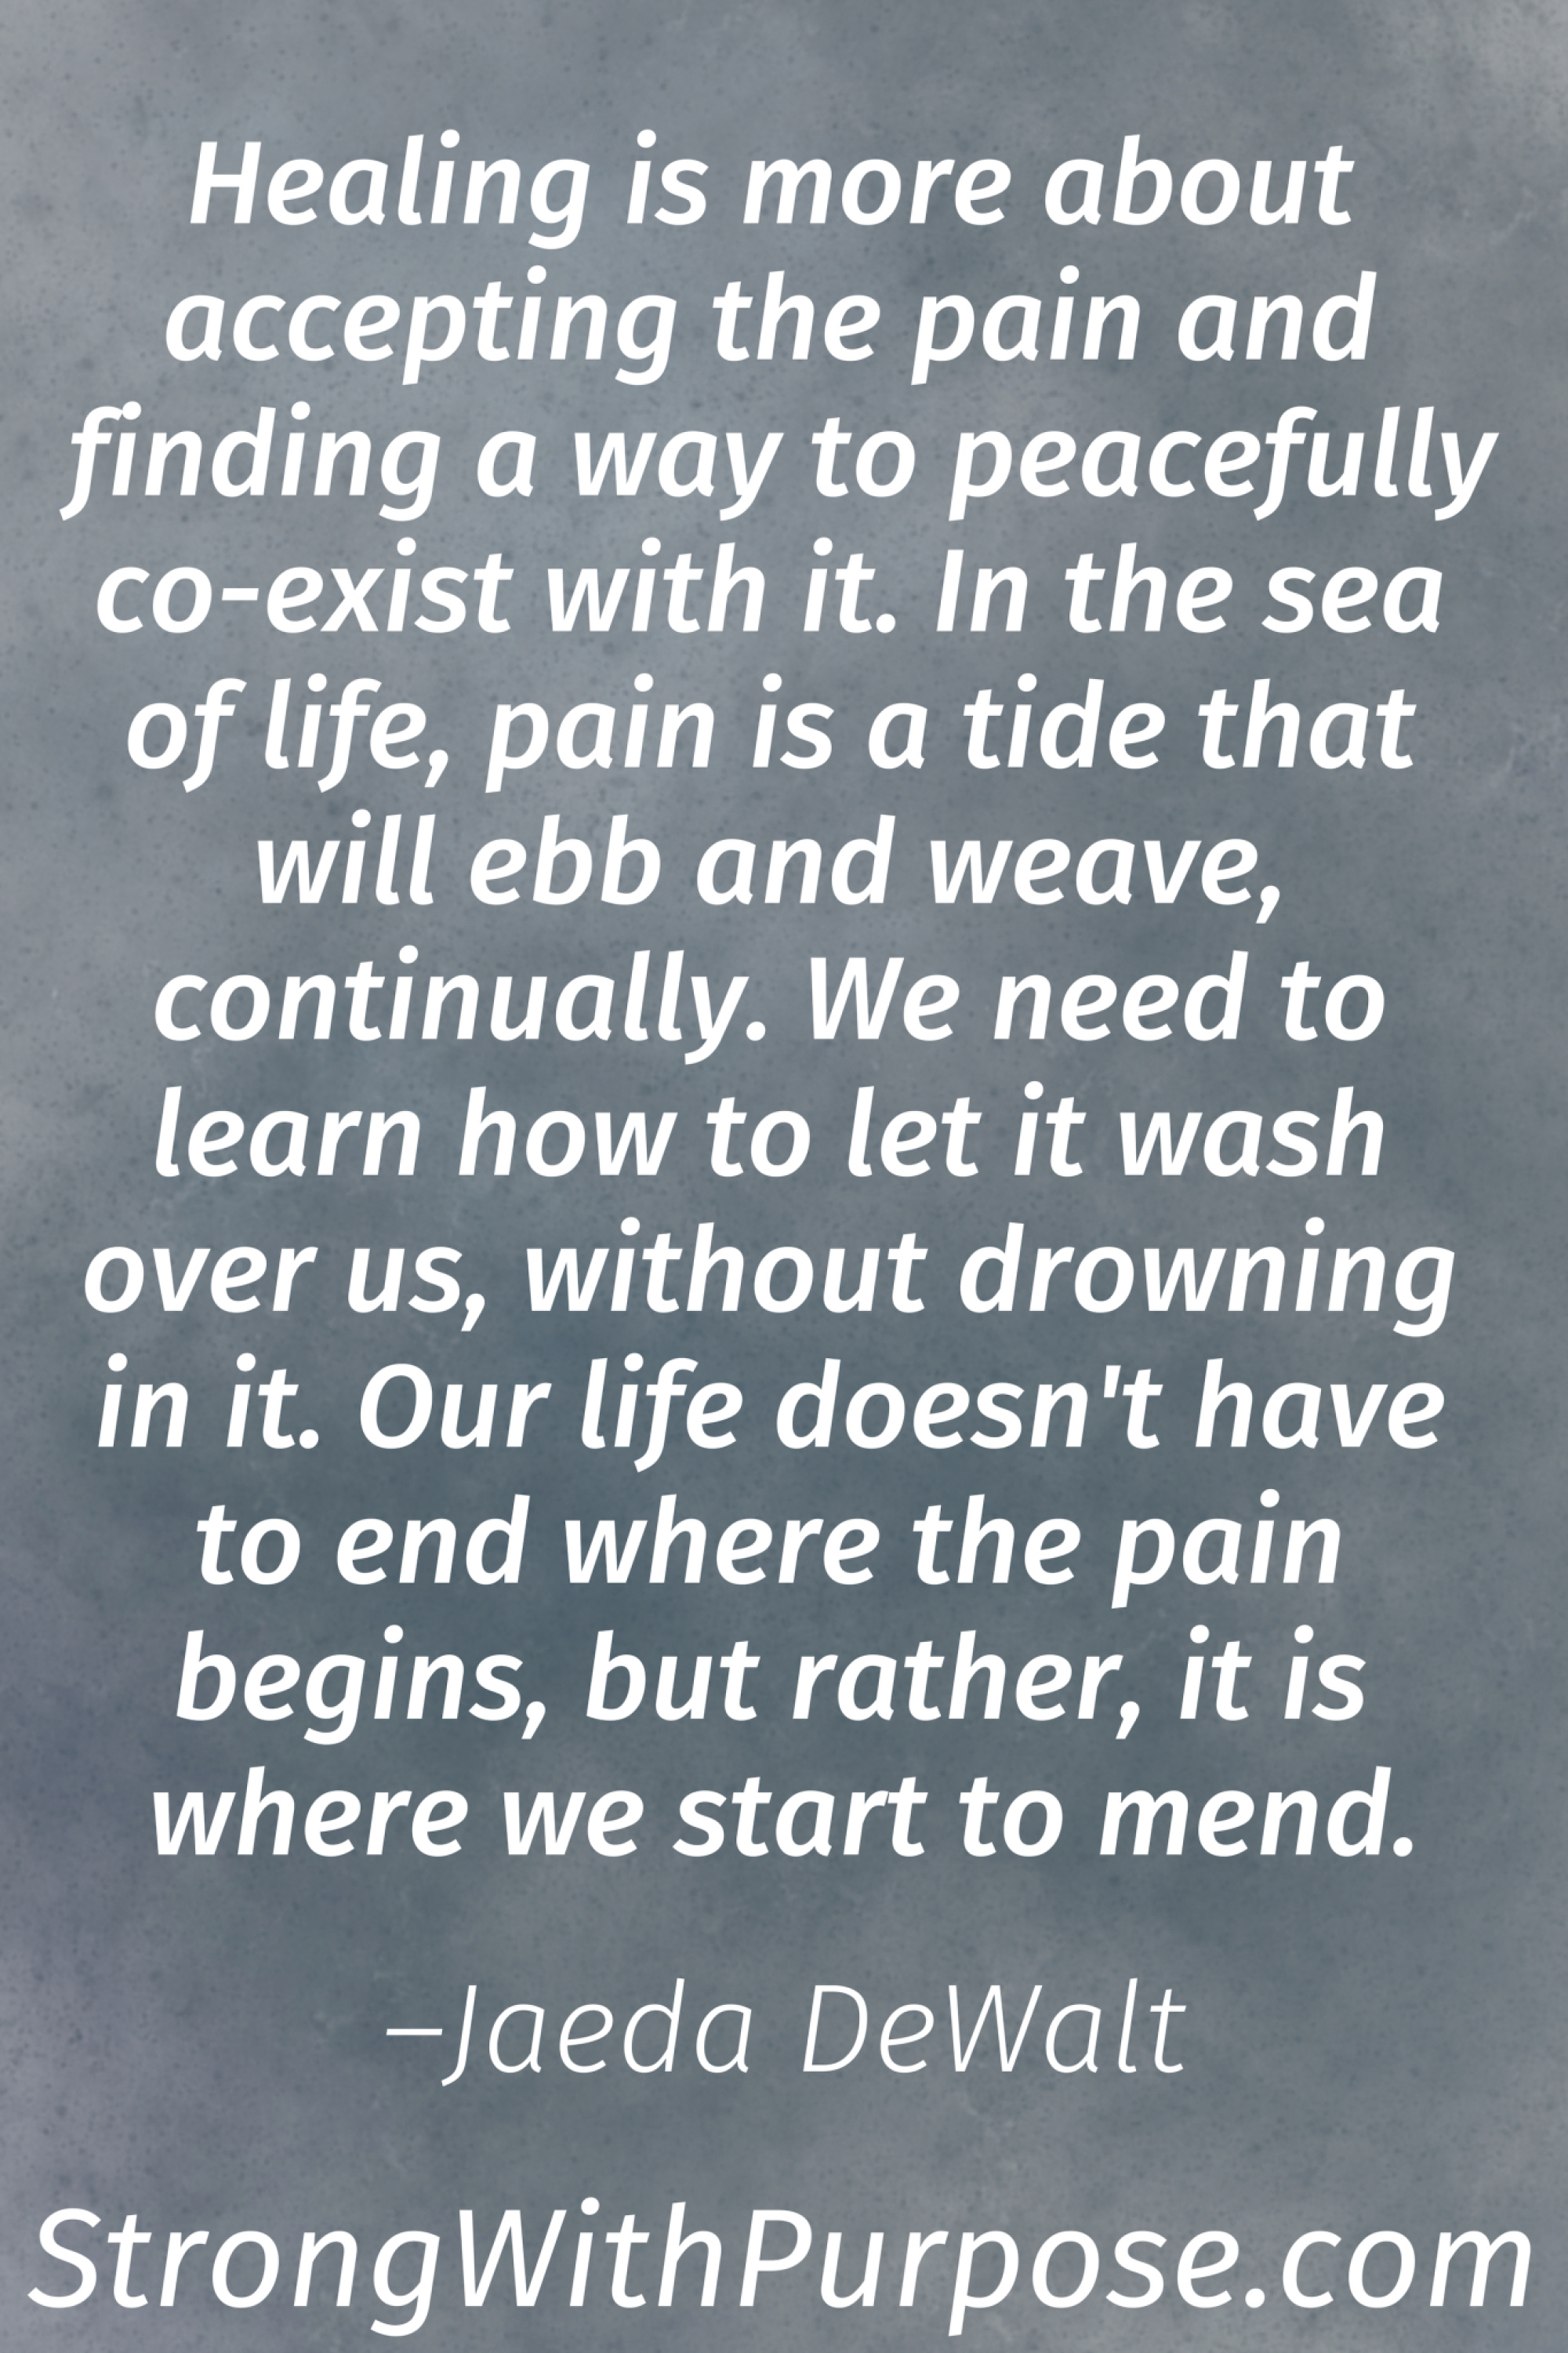 Image of: Inspirational 10 Inspiring Chronic Pain Quotes For Healing Living In The Sea Of Life Strong With Purpose 10 Inspiring Chronic Pain Quotes For Healing Living Strong With